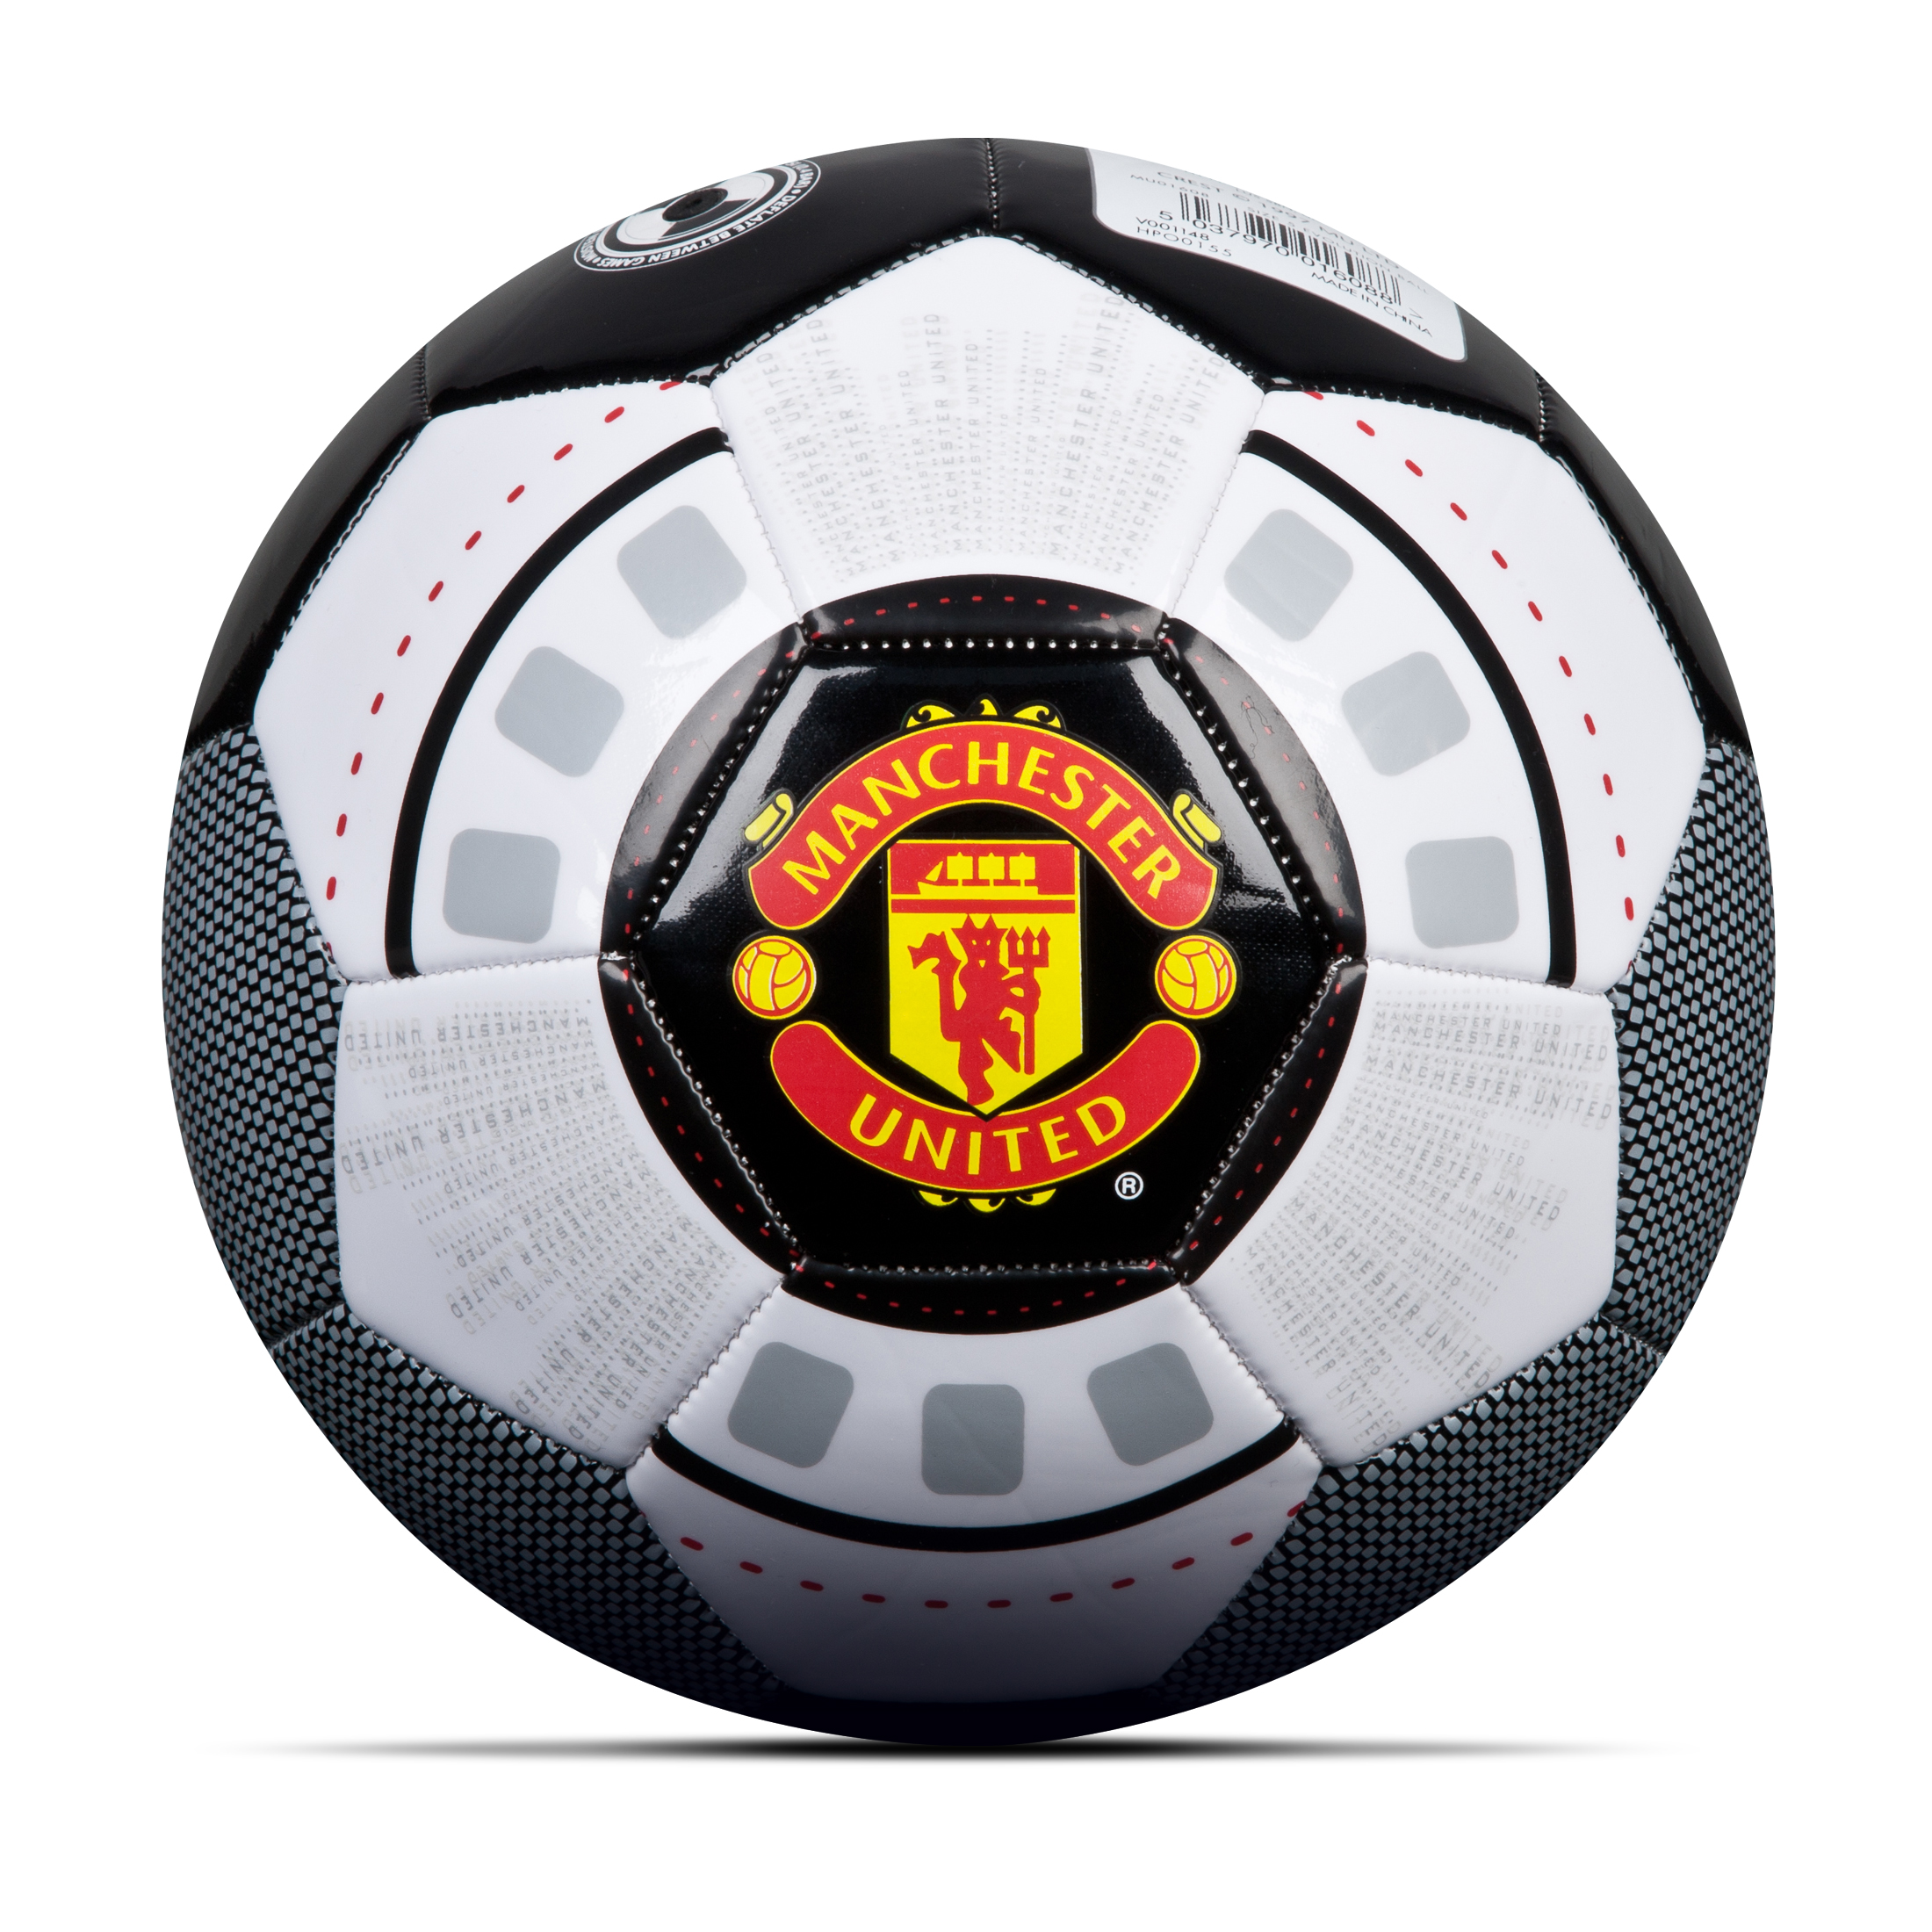 Manchester United Evolution Football - Size 5